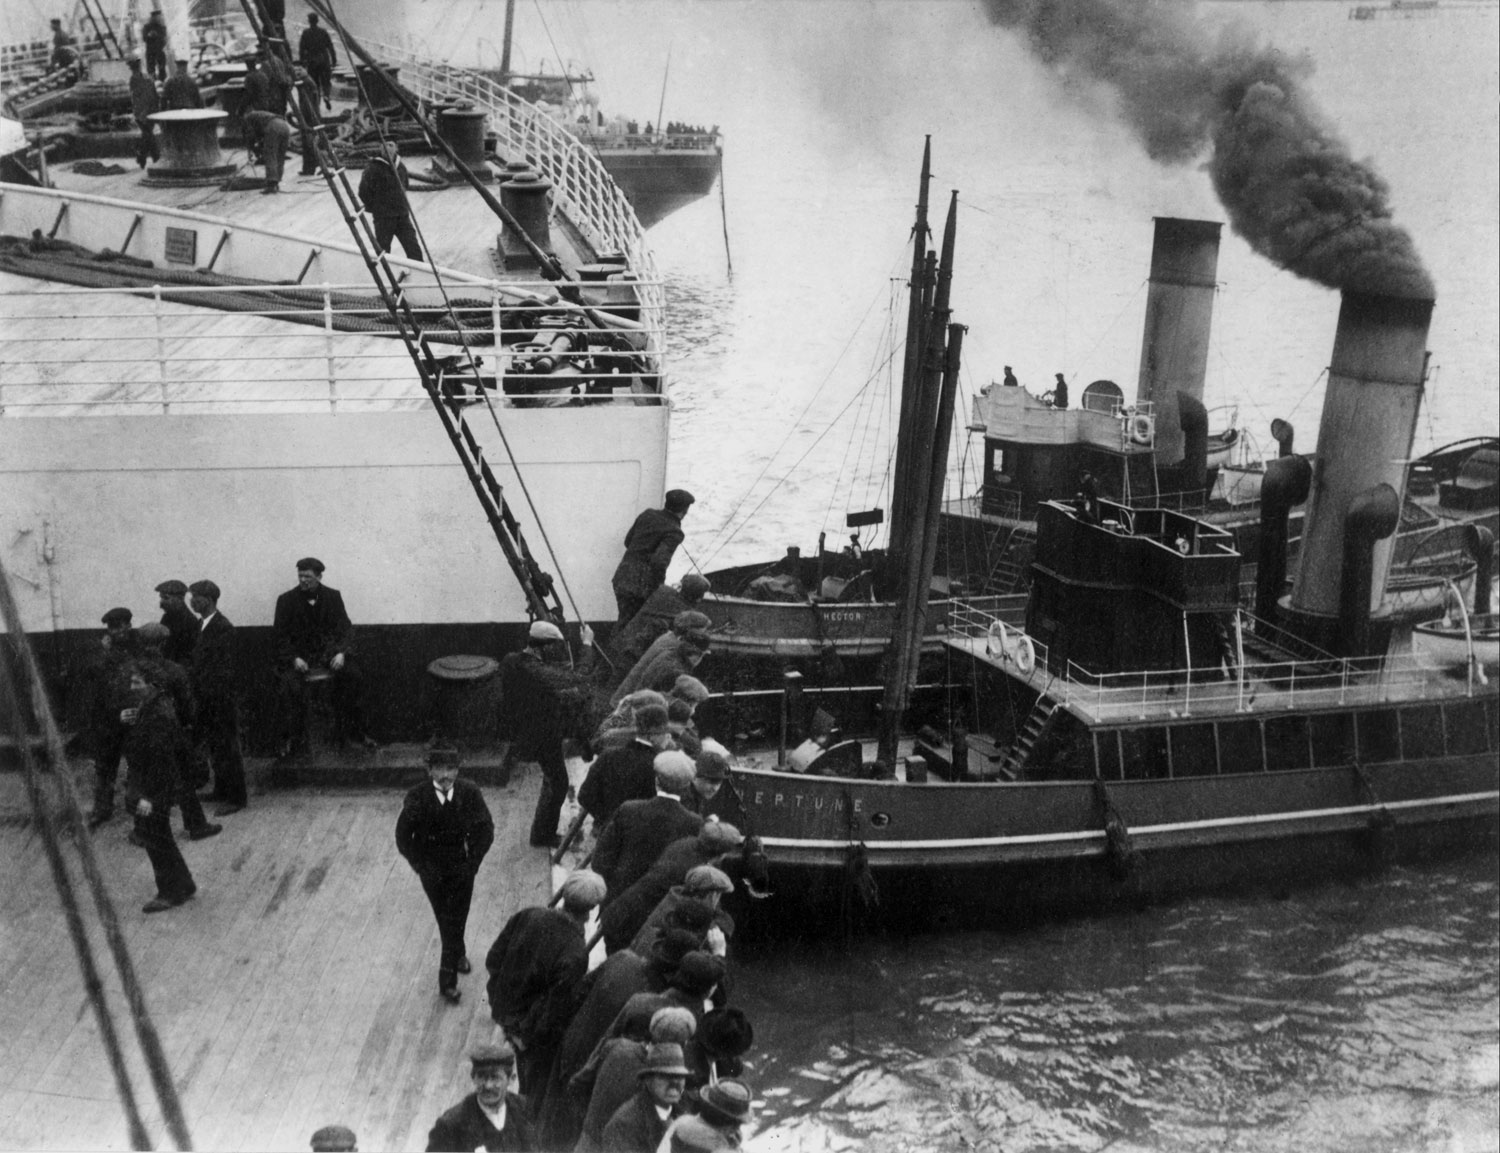 Tugs 'Hector' and 'Neptune' nudging the bow of the Titanic away from a near collision, 1912.